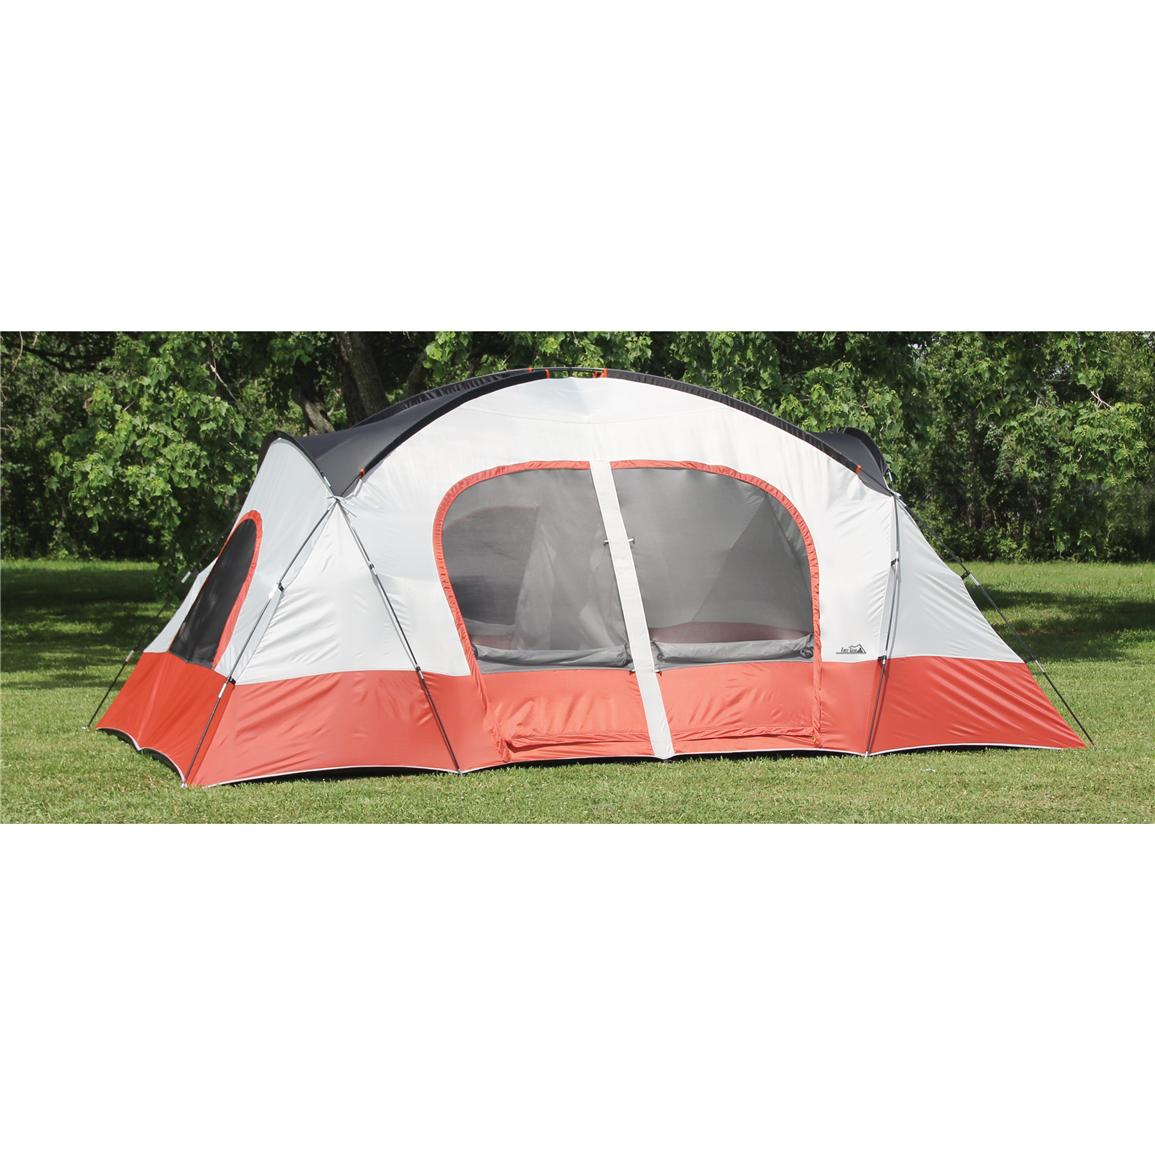 Texsport® Bull Canyon 2-room Cabin Dome Tent, Apricot / Gray / Firecracker Orange, Without Rainfly